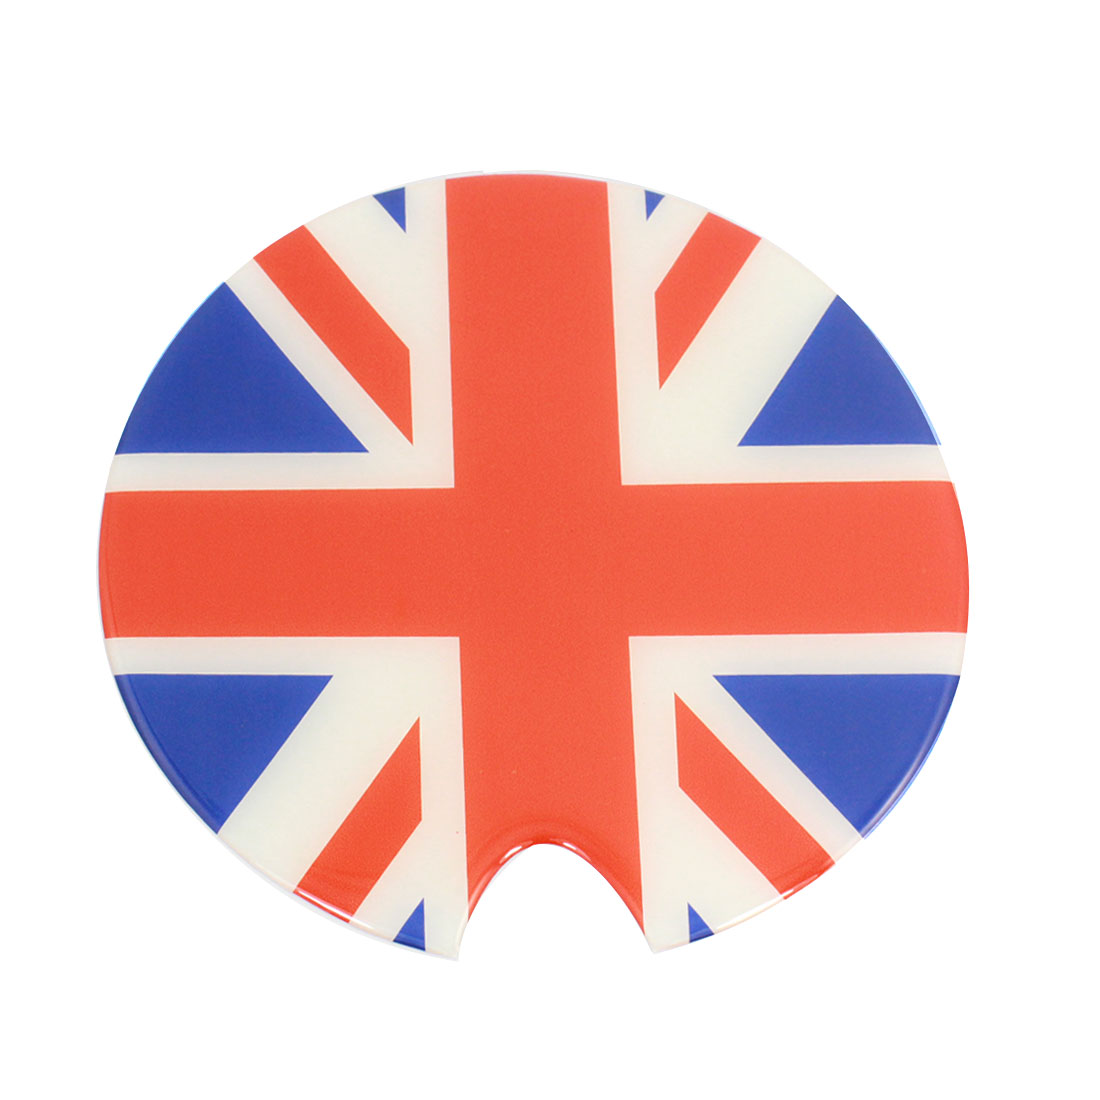 Reflective Flag Pattern Round Oil Tank Pad Round Sticker Decor for Car